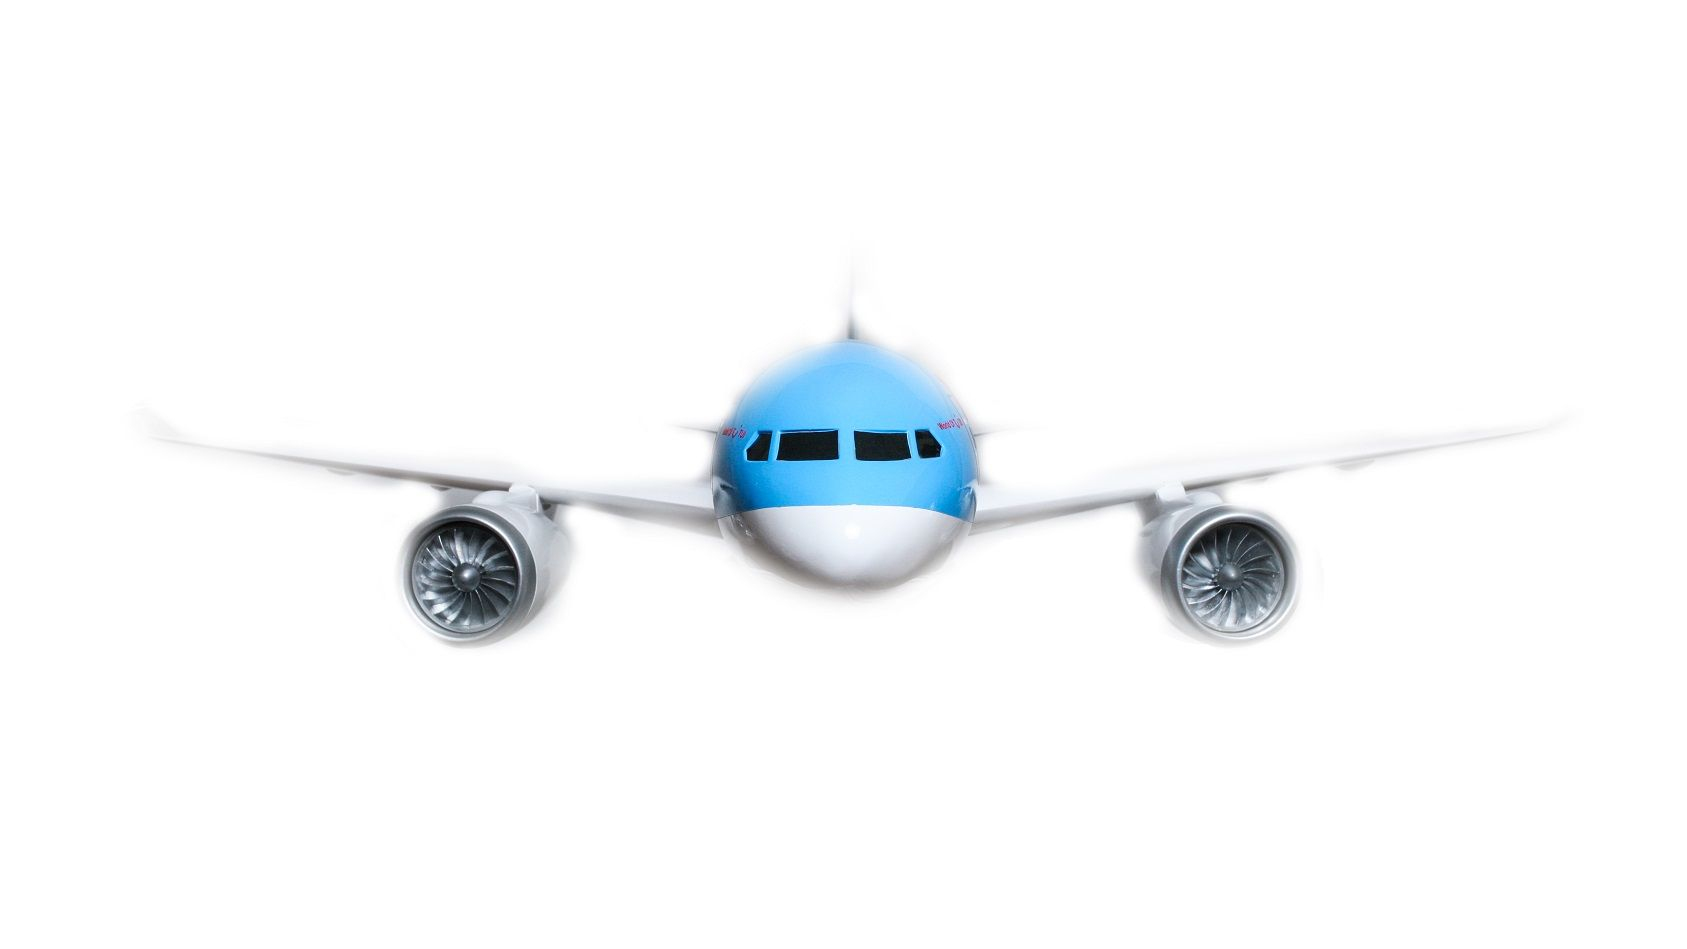 1525-9137-Boeing-787-800-Thomson-Airways-Model-Plane